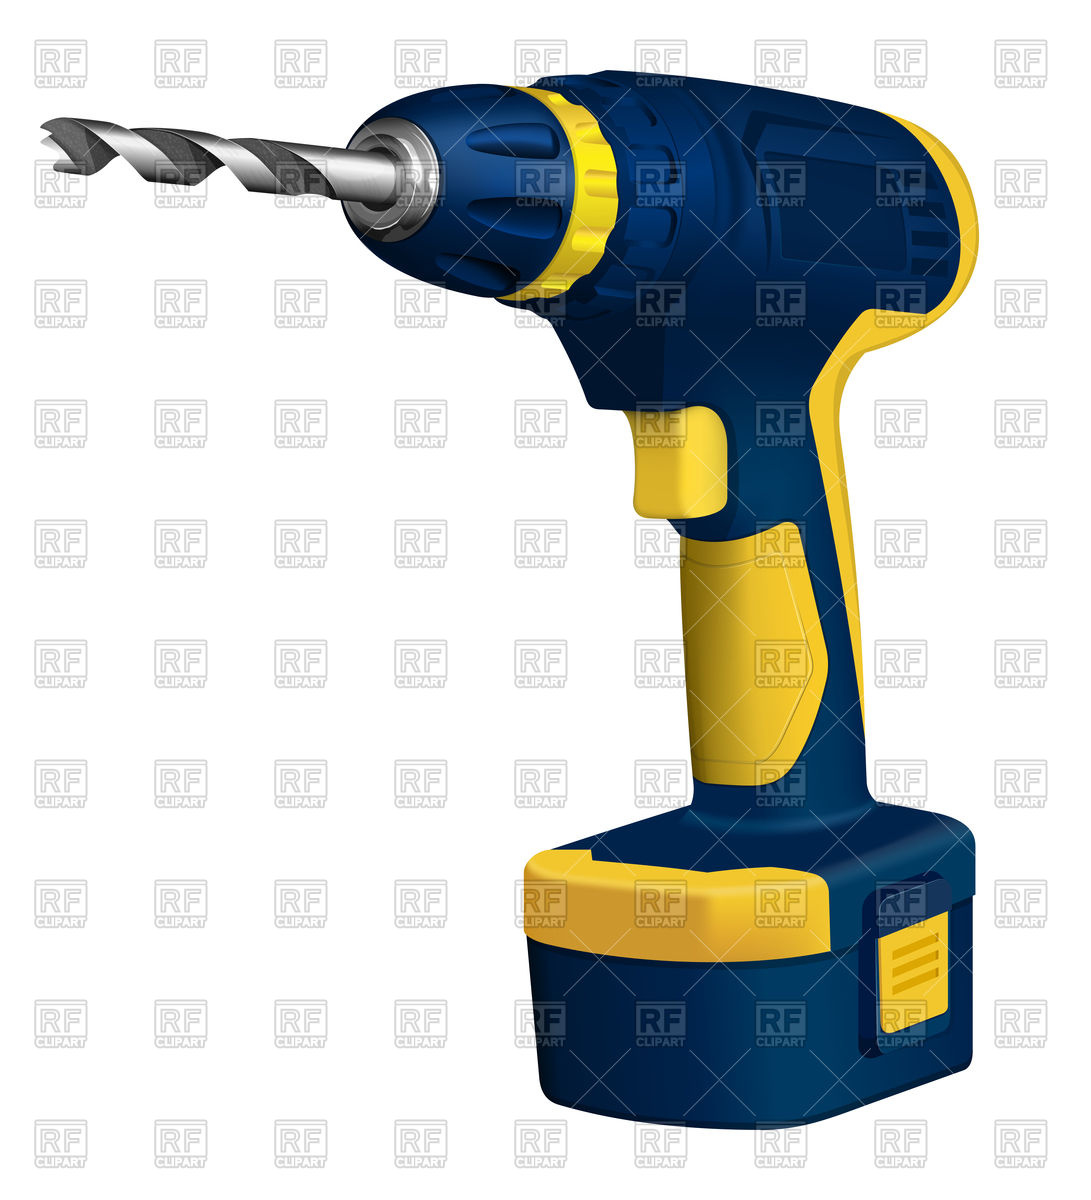 1091x1200 Realistic Cordless Drill Vector Image Vector Artwork Of Objects